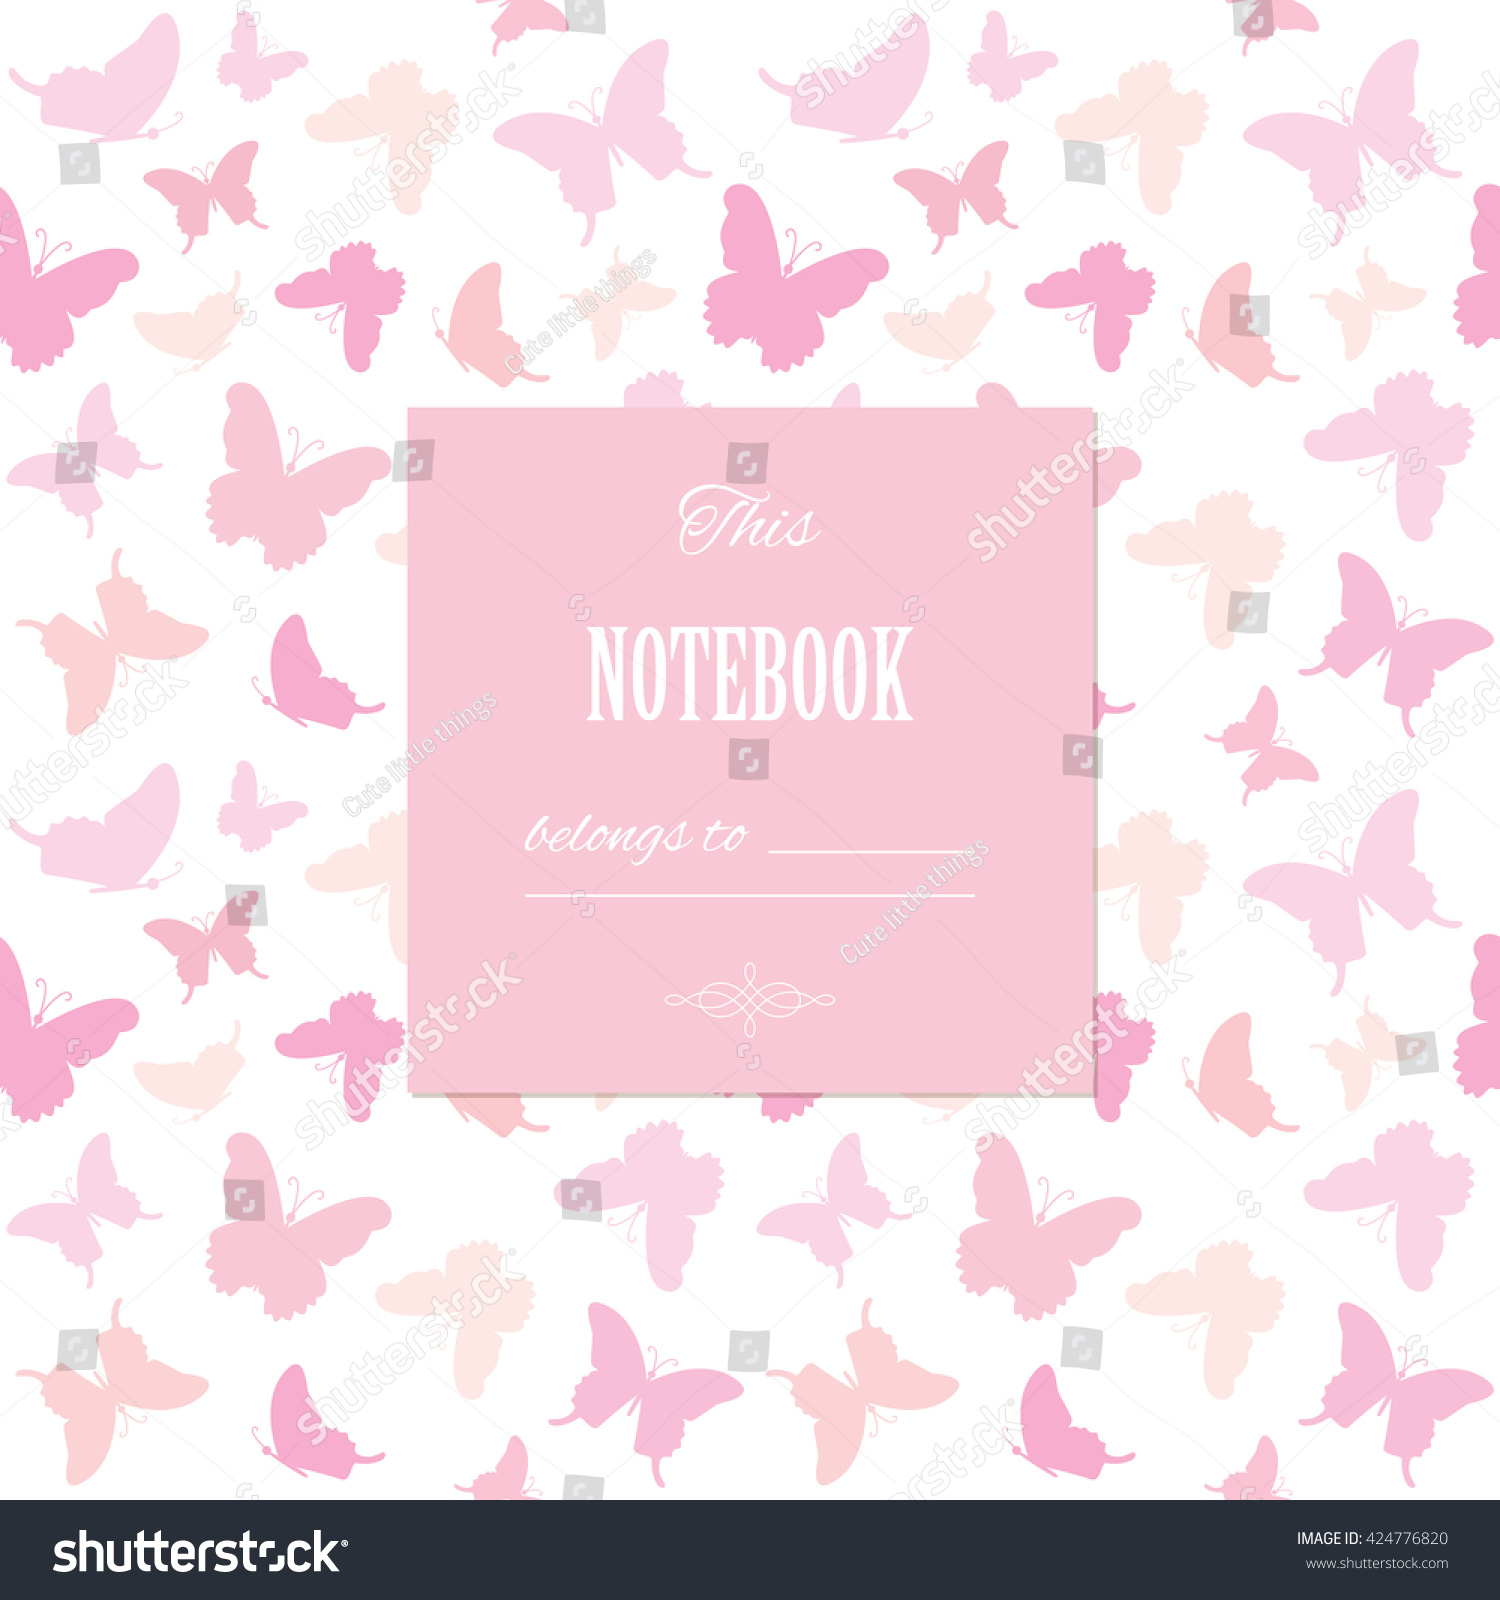 Cover page designs for school projects note book cover page design - Cute Template For Scrapbook Girly Design Birthday Wedding Bridal Shower Notebook Cover